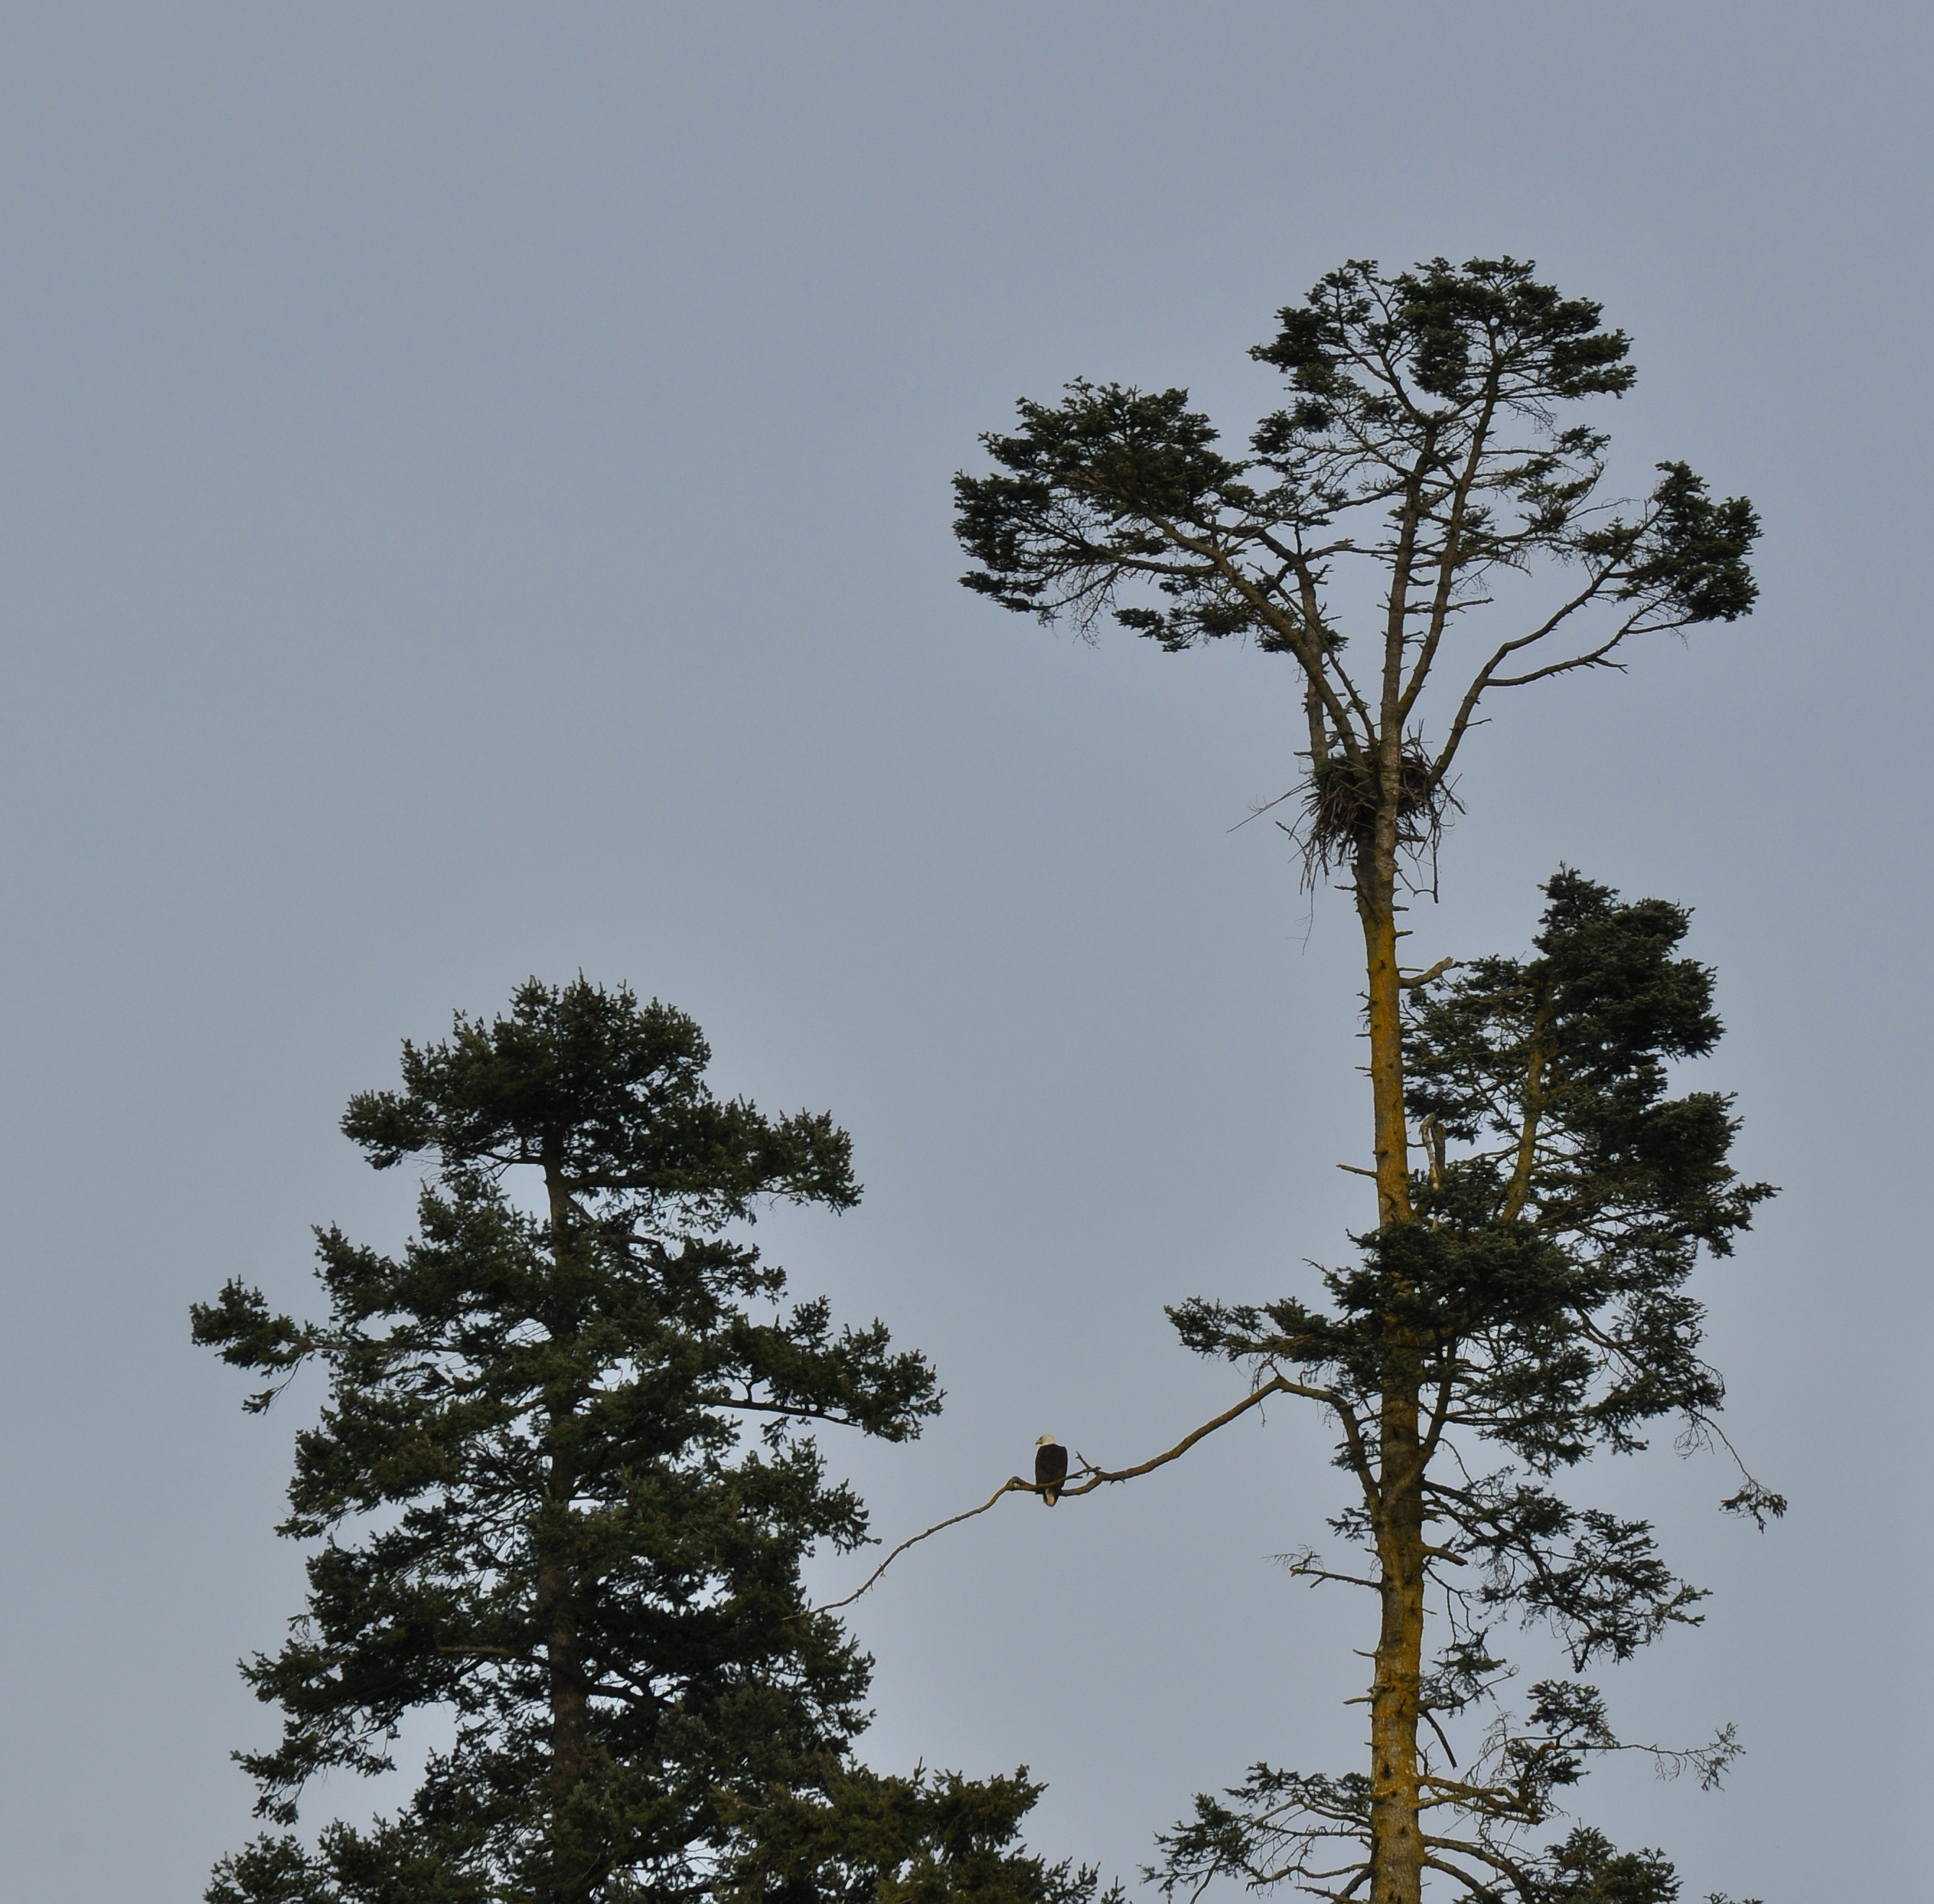 A Bald Eagle  and its nest in a Grand Fir Abies grandis, near the Nicomekl River.